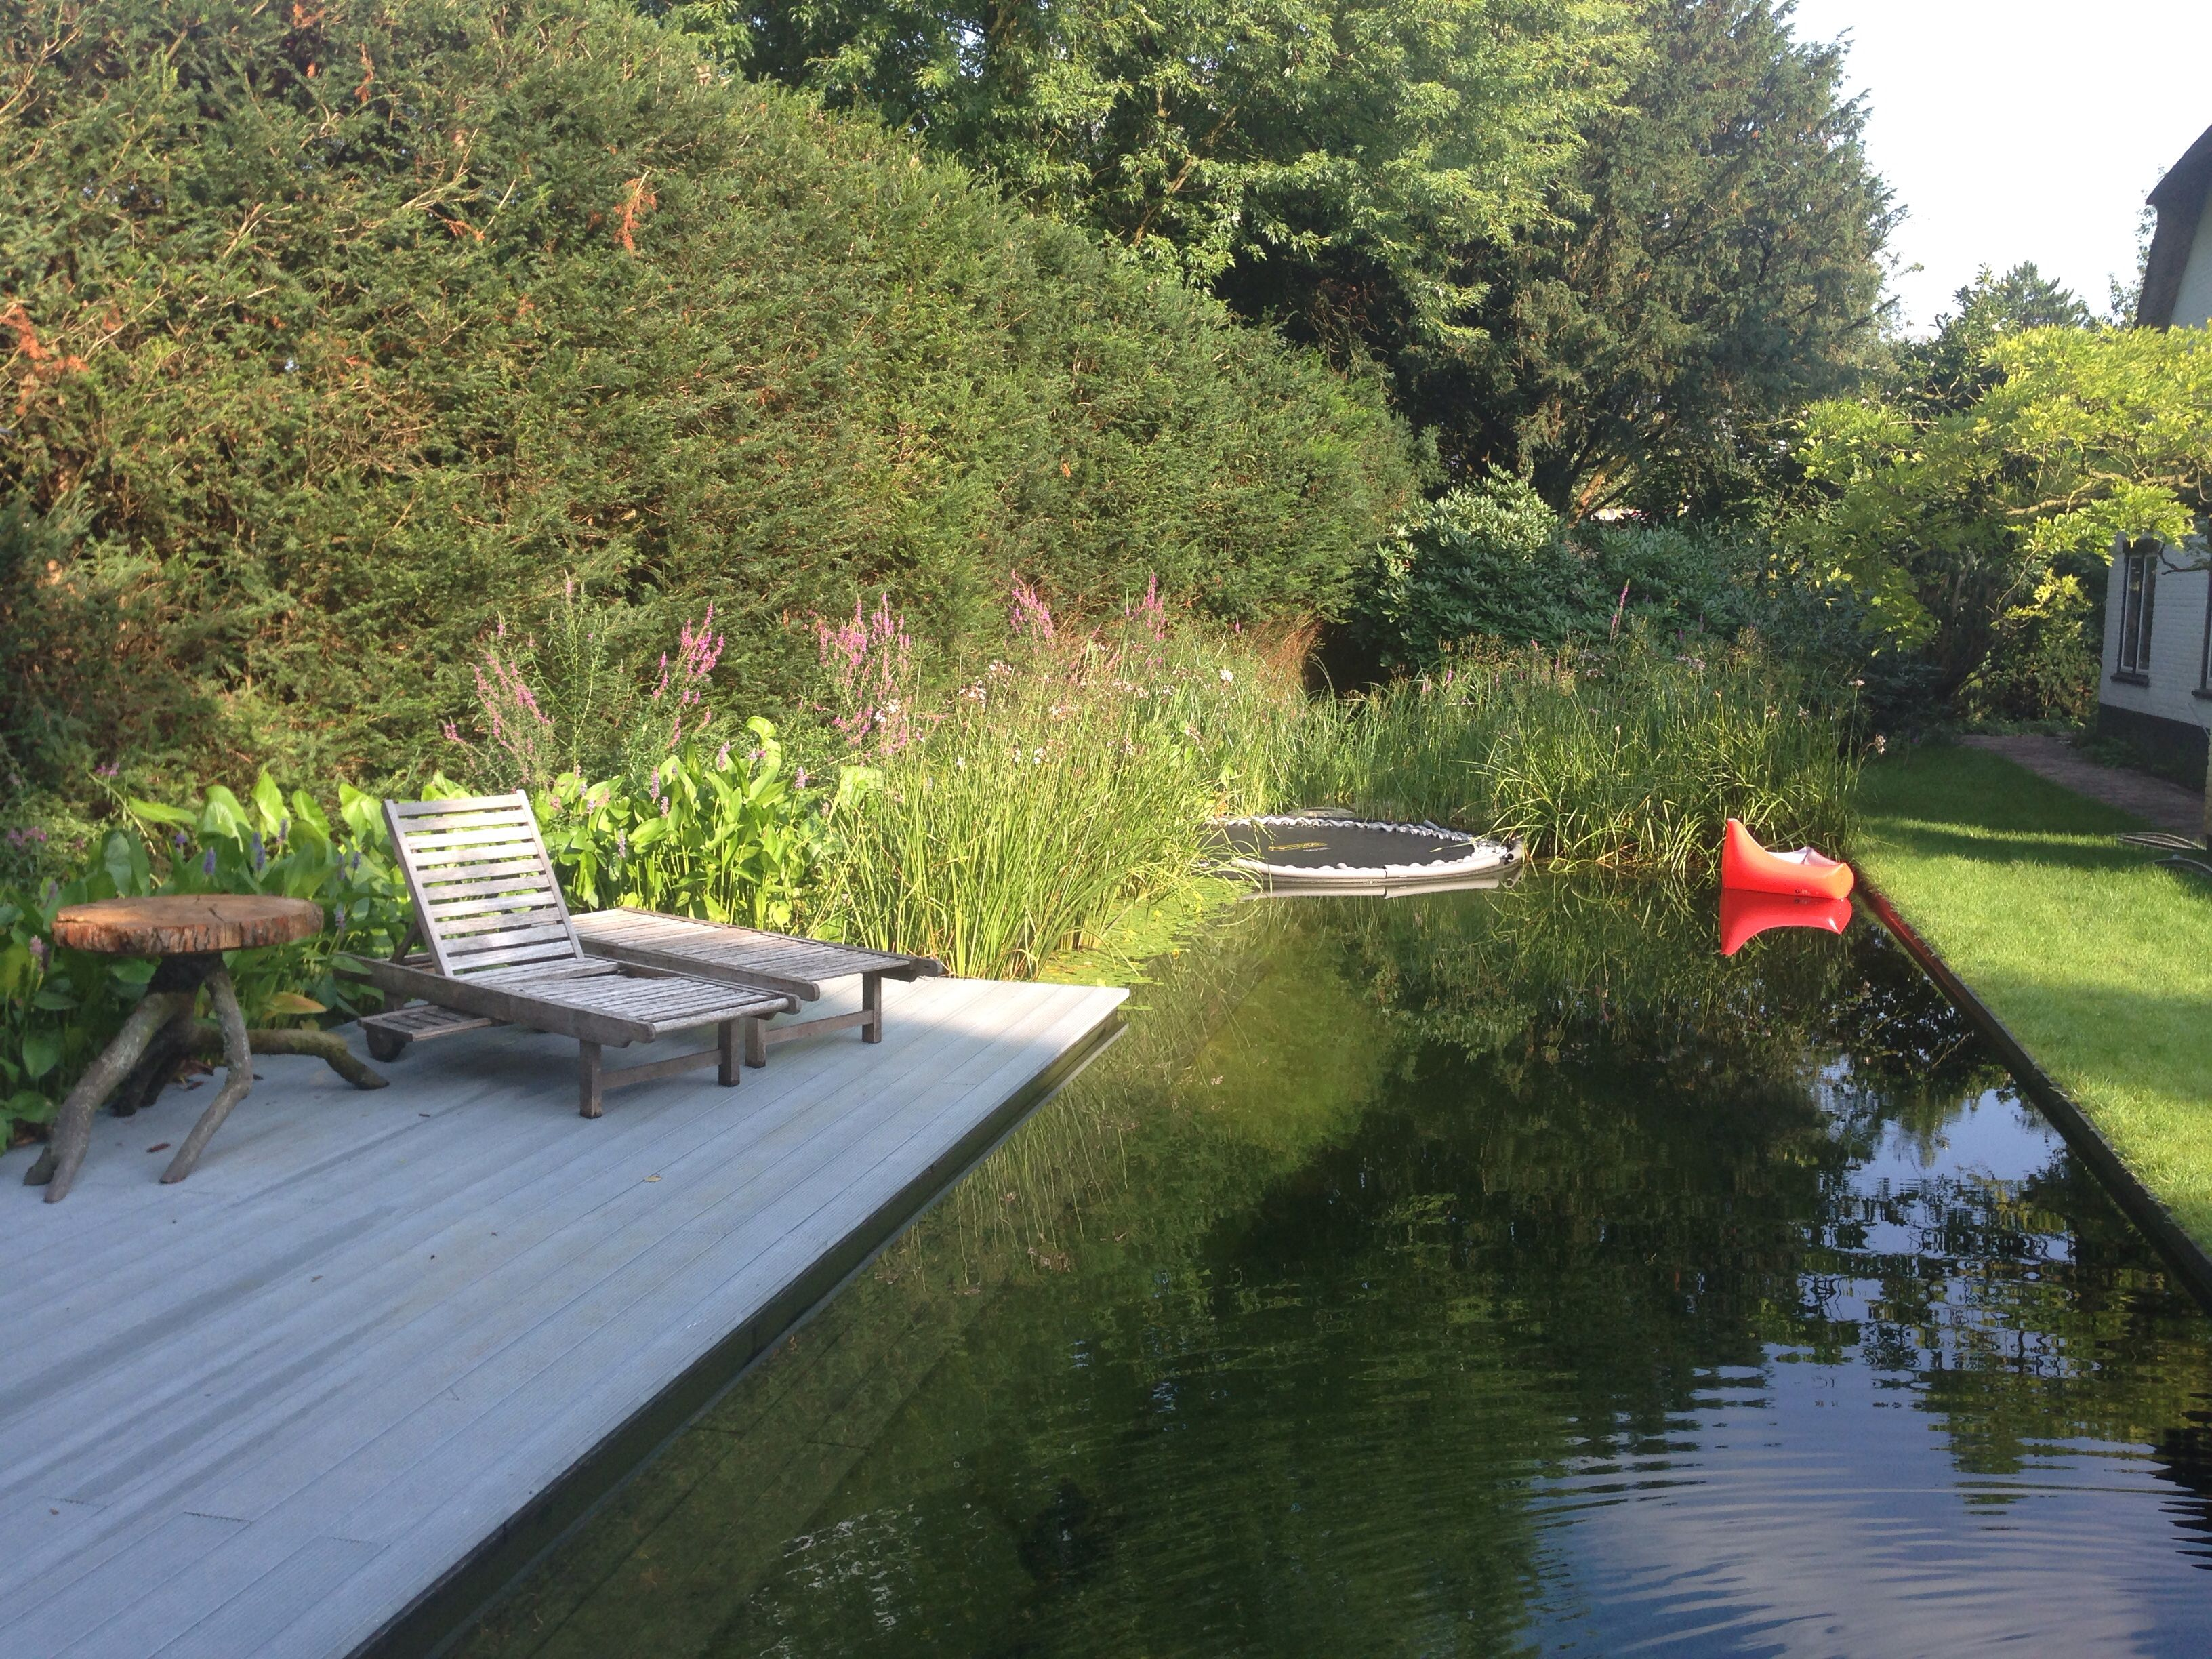 Eco friendly pool designs solar heating and bio filter interior - Natural Pool With Trampoline From Lilypond